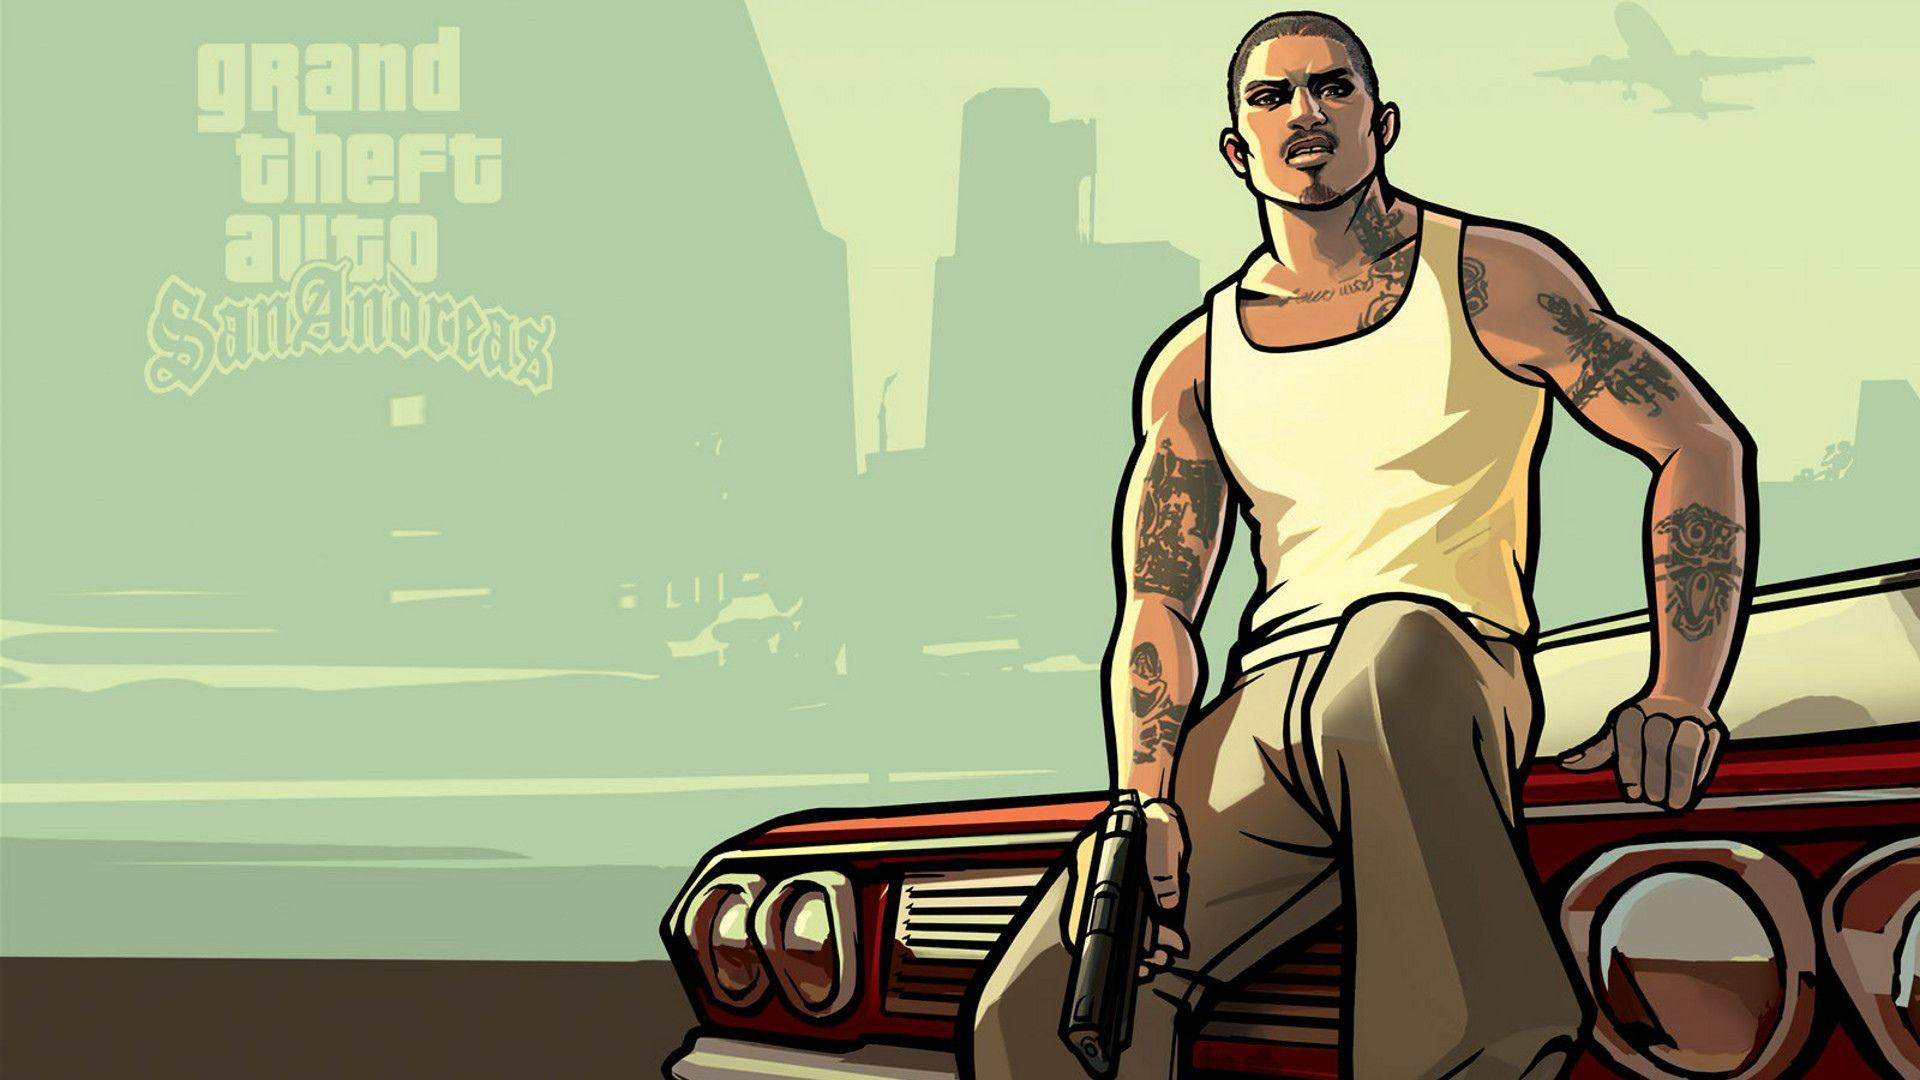 13 Grand Theft Auto San Andreas HD Wallpapers